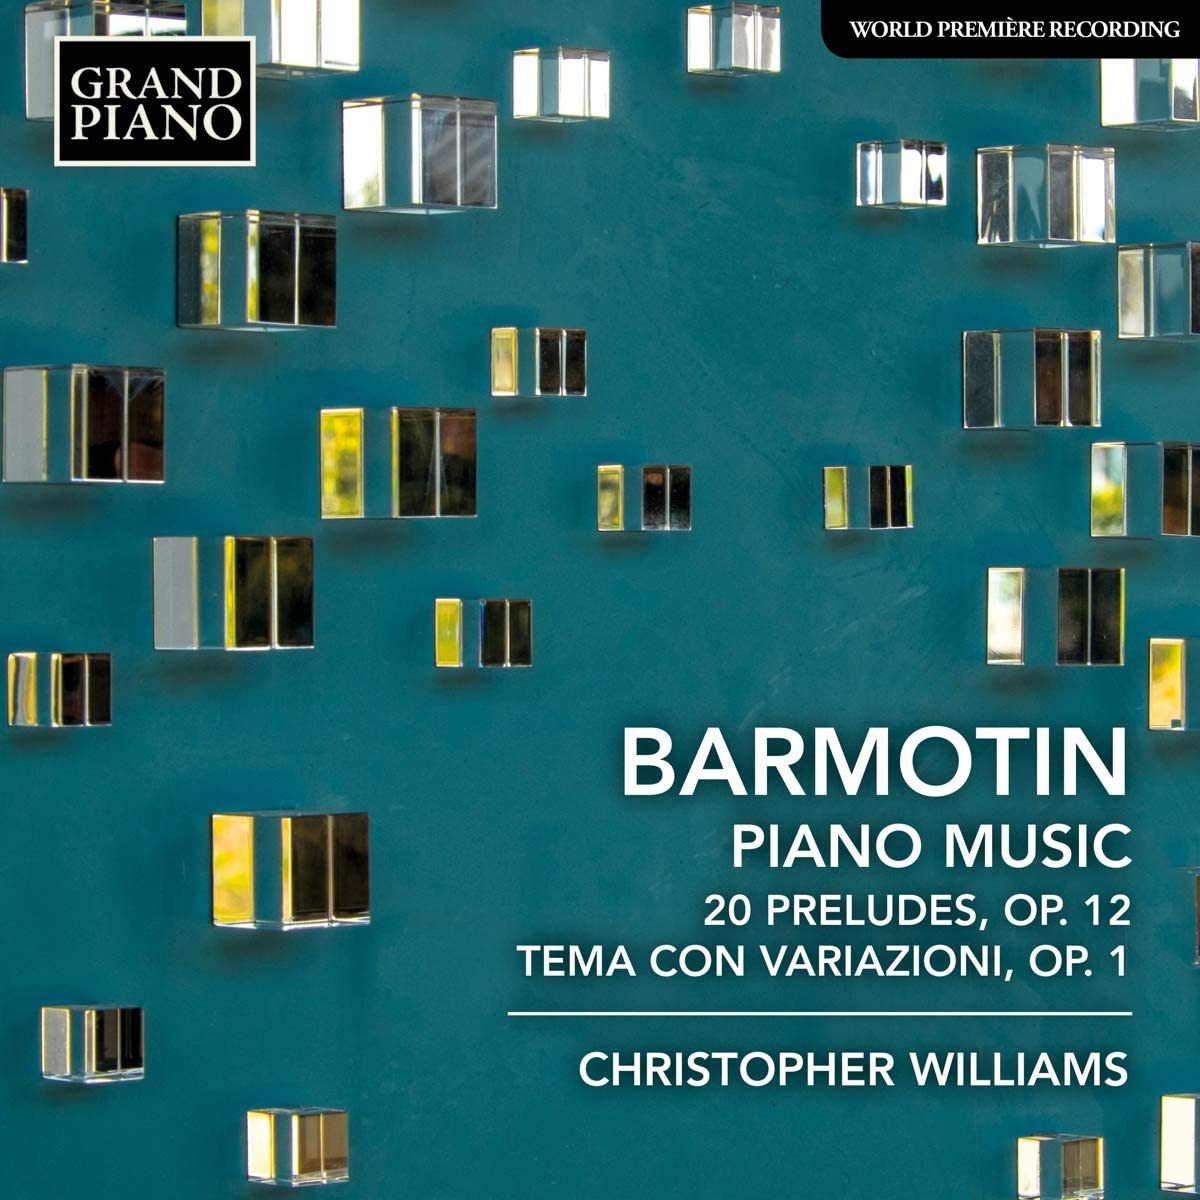 Review of BARMOTIN Piano Music (Christopher Williams)